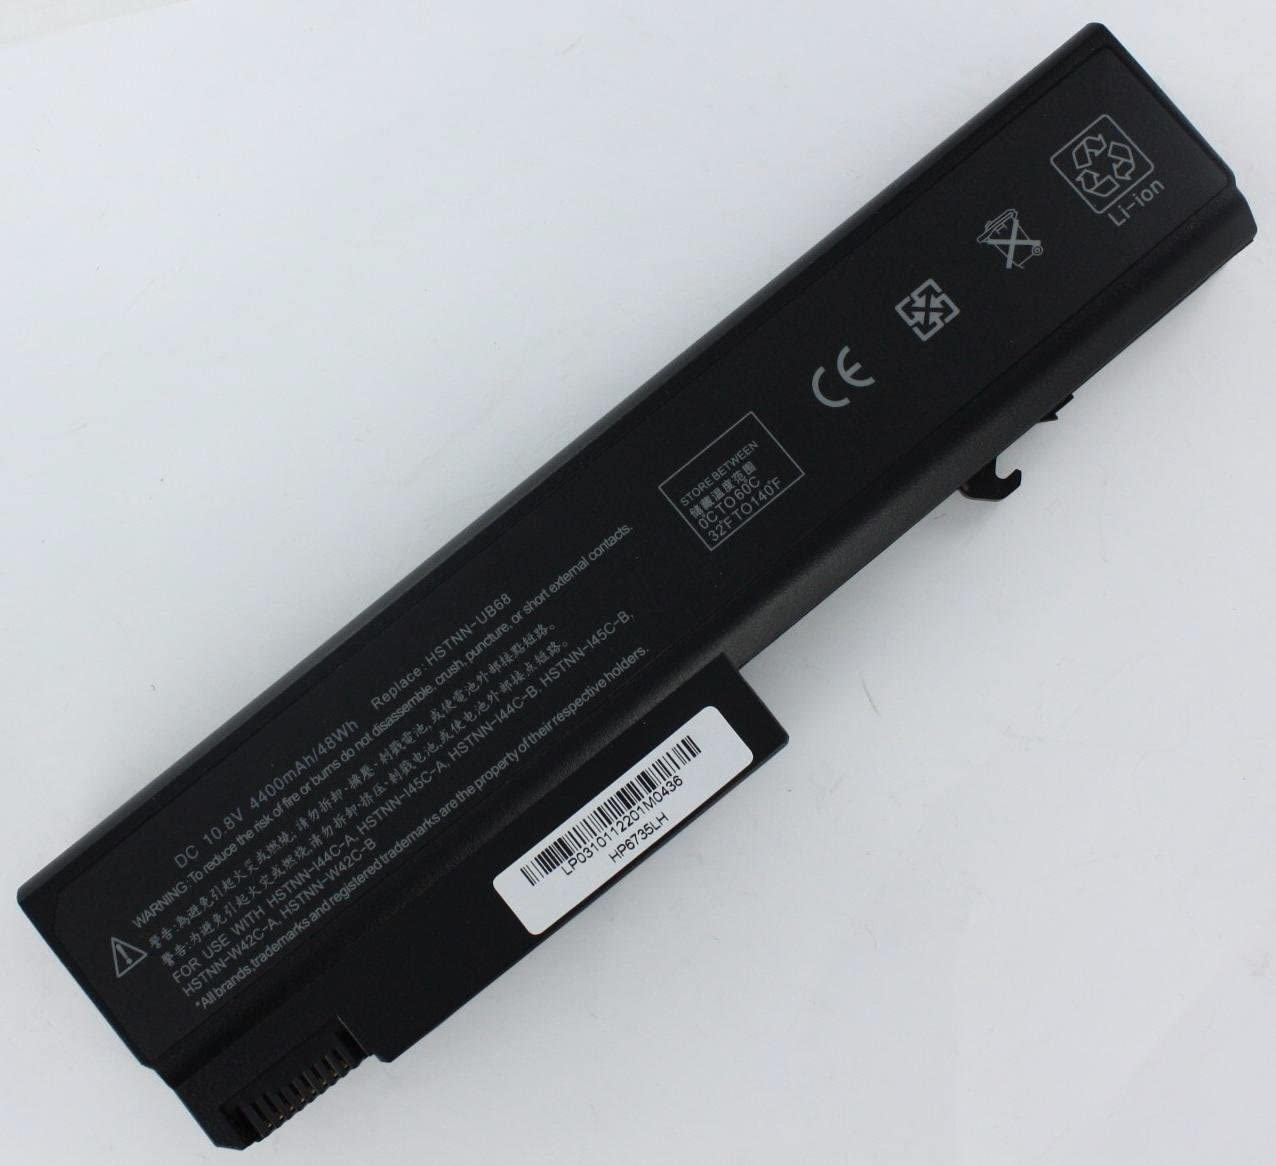 HP Long Life Battery Notebook battery - Lithium ion 6 cell - 4400 mAh 486295-001